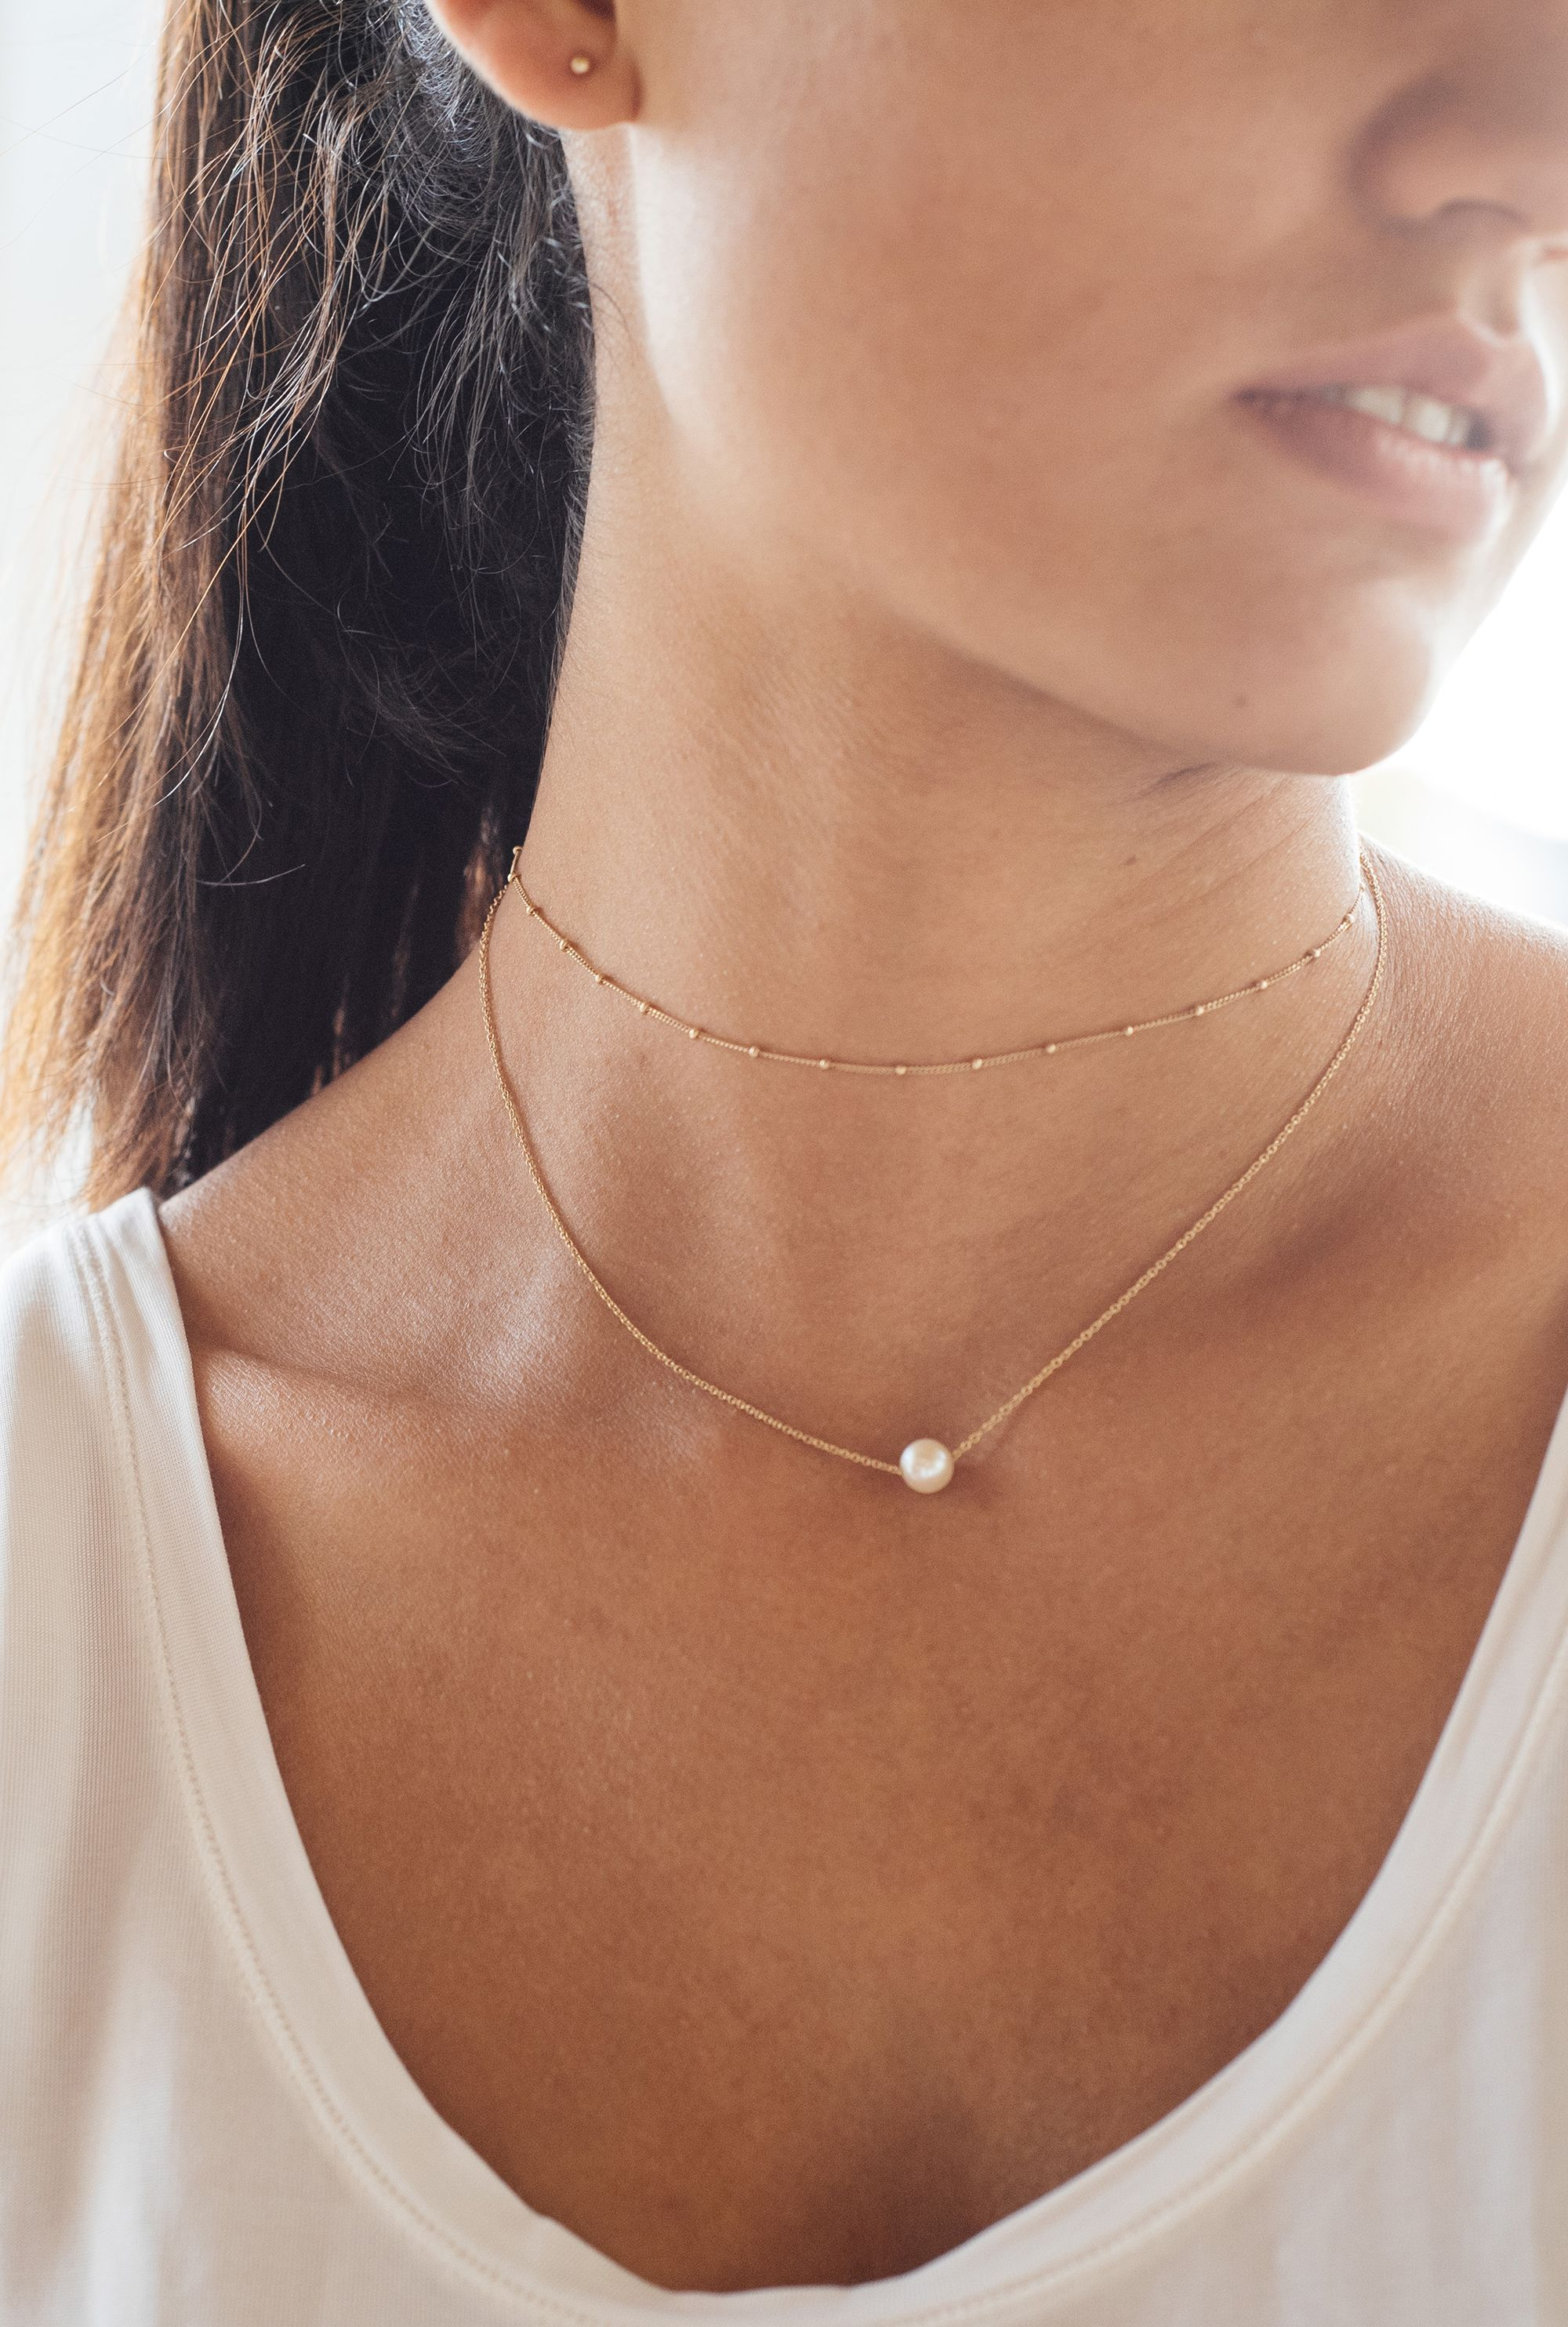 2ed7cd6ecc12 Mejuri spheres choker and pearl necklace in 14 solid gold.  jewelrynecklaces